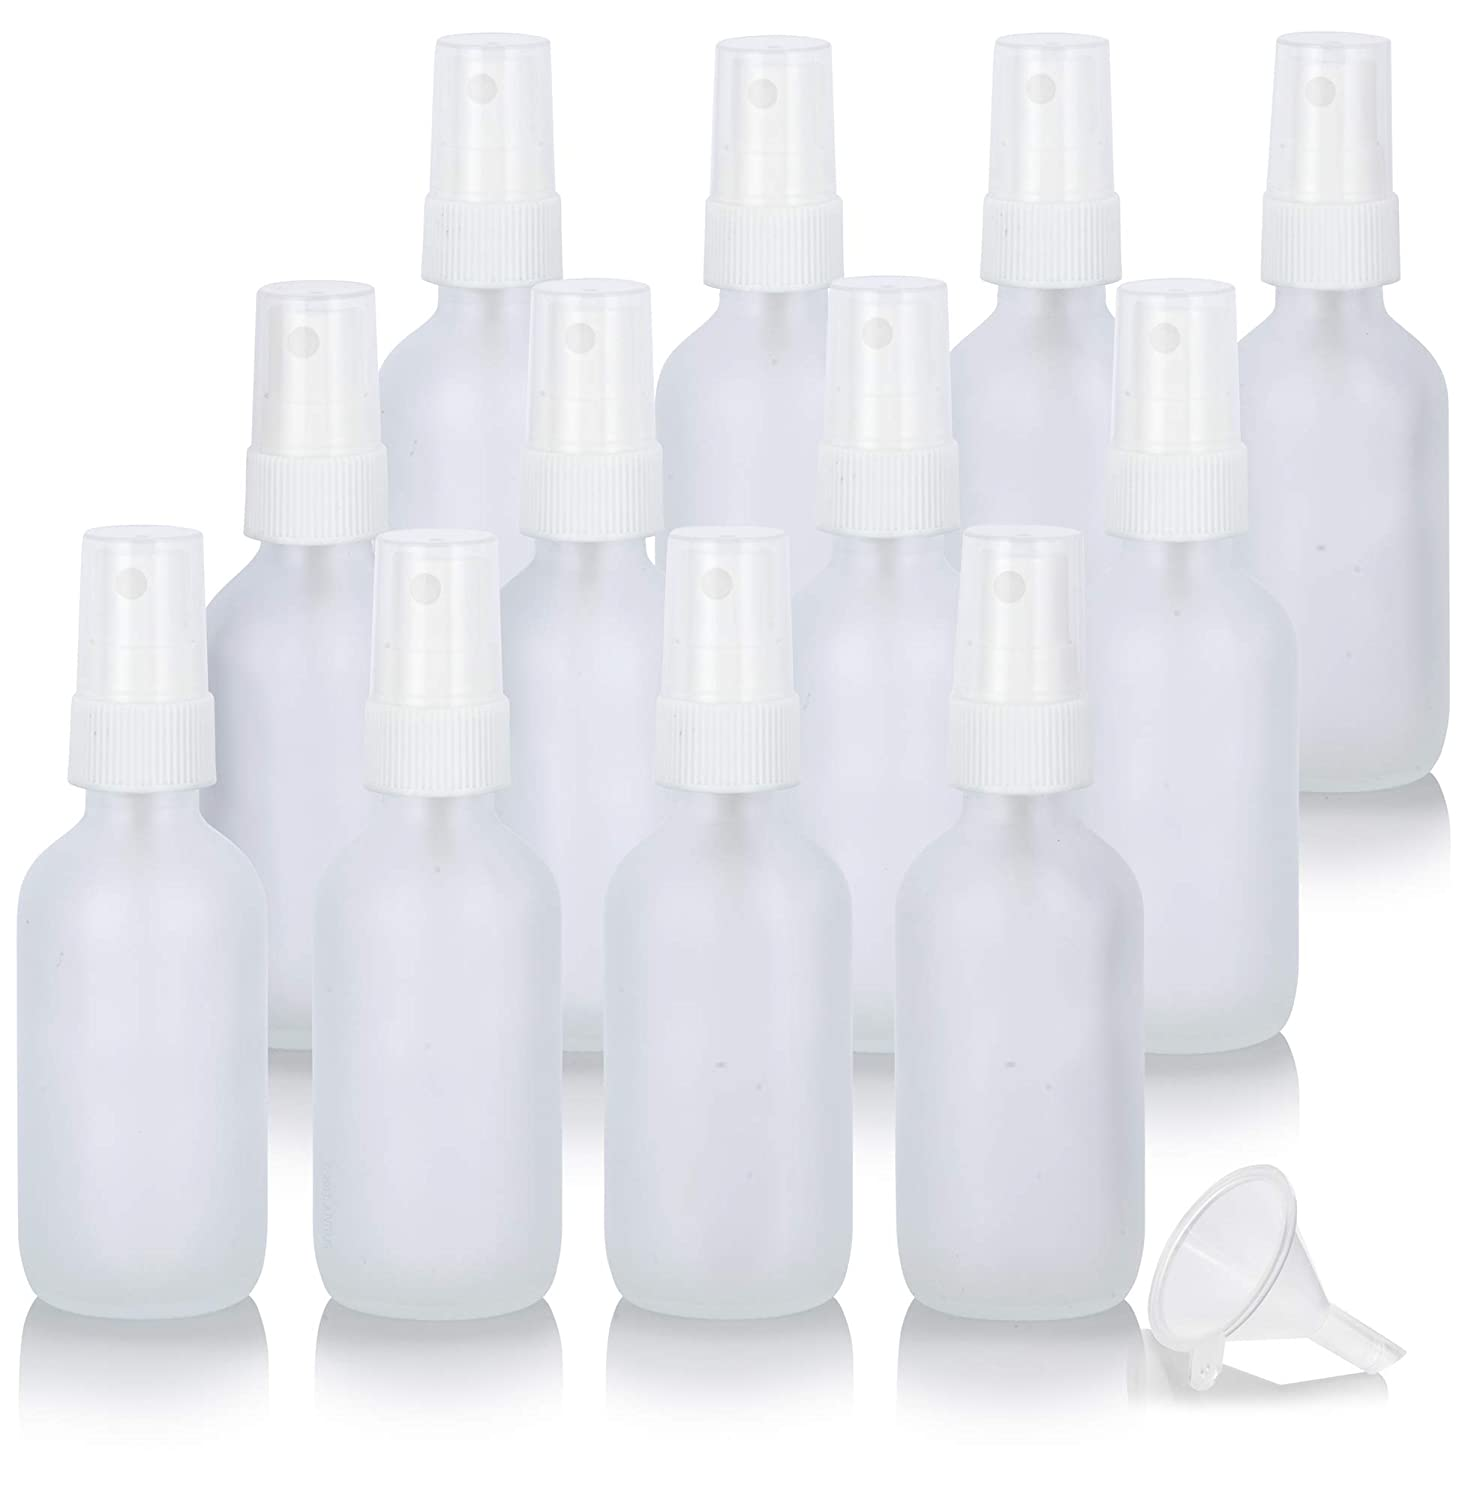 2 oz Frosted Clear Glass Boston Round White Fine Mist Spray Bottle (12 pack) + Funnel for essential oils, aromatherapy, food grade, bpa free